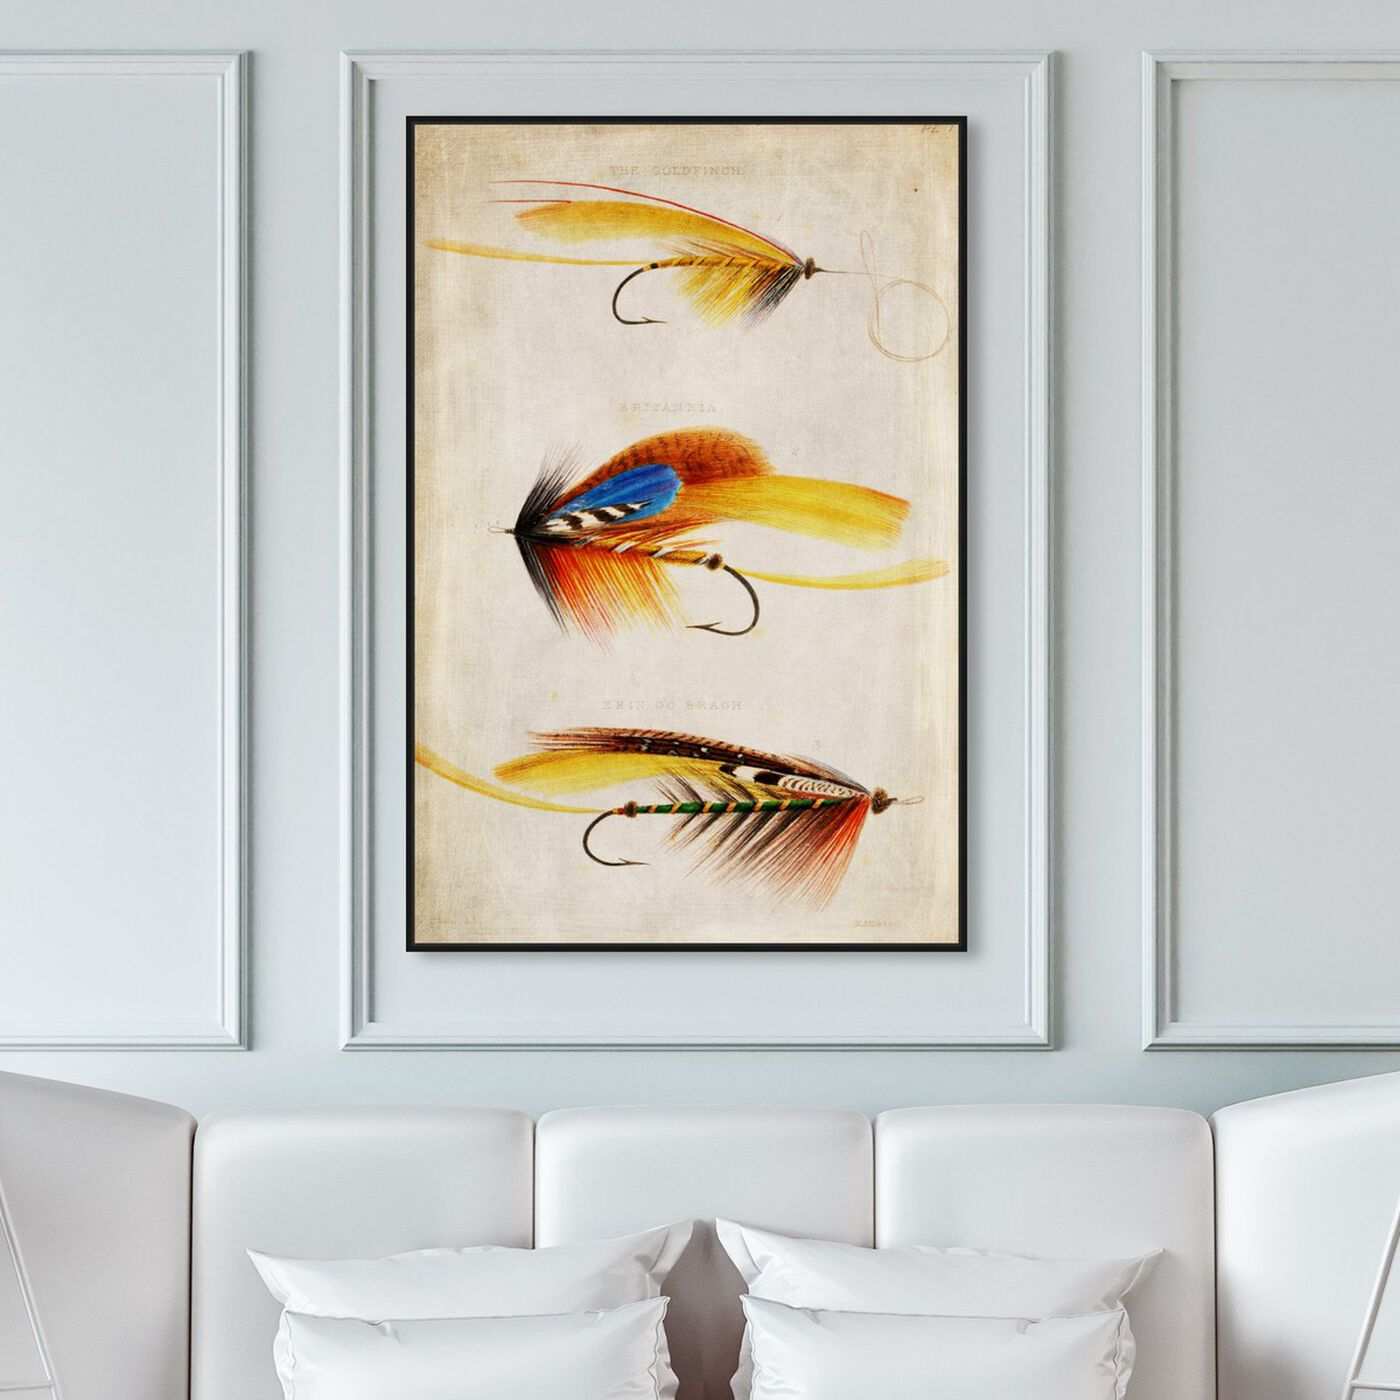 Hanging view of Goldfinch featuring entertainment and hobbies and fishing art.